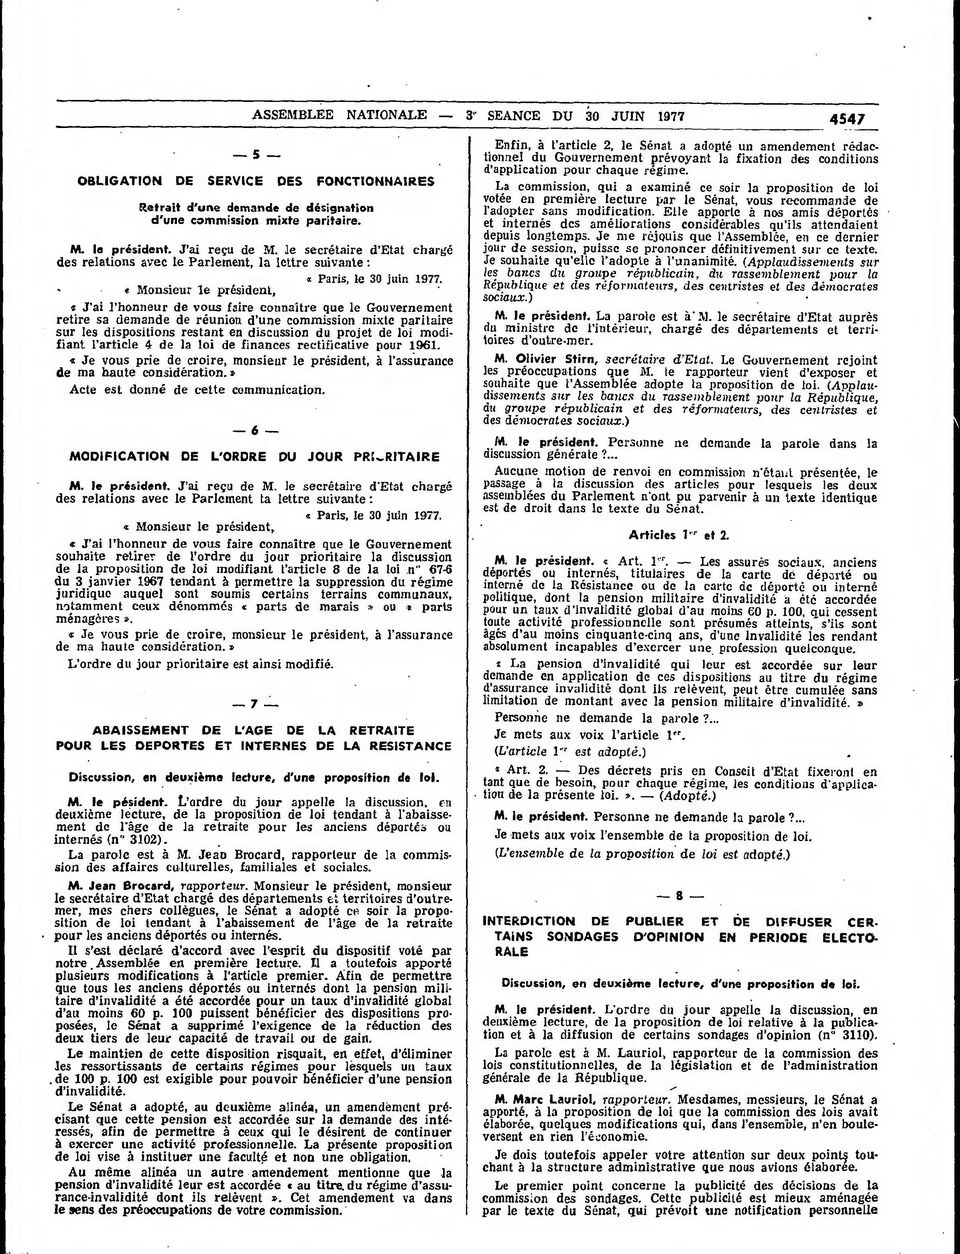 x Monsieur le président, e J'ai l'honneur de vous faire connaître que le Gouvernement retire sa demande de réunion d'une commission mixte paritaire sur les dispositions restant en discussion du